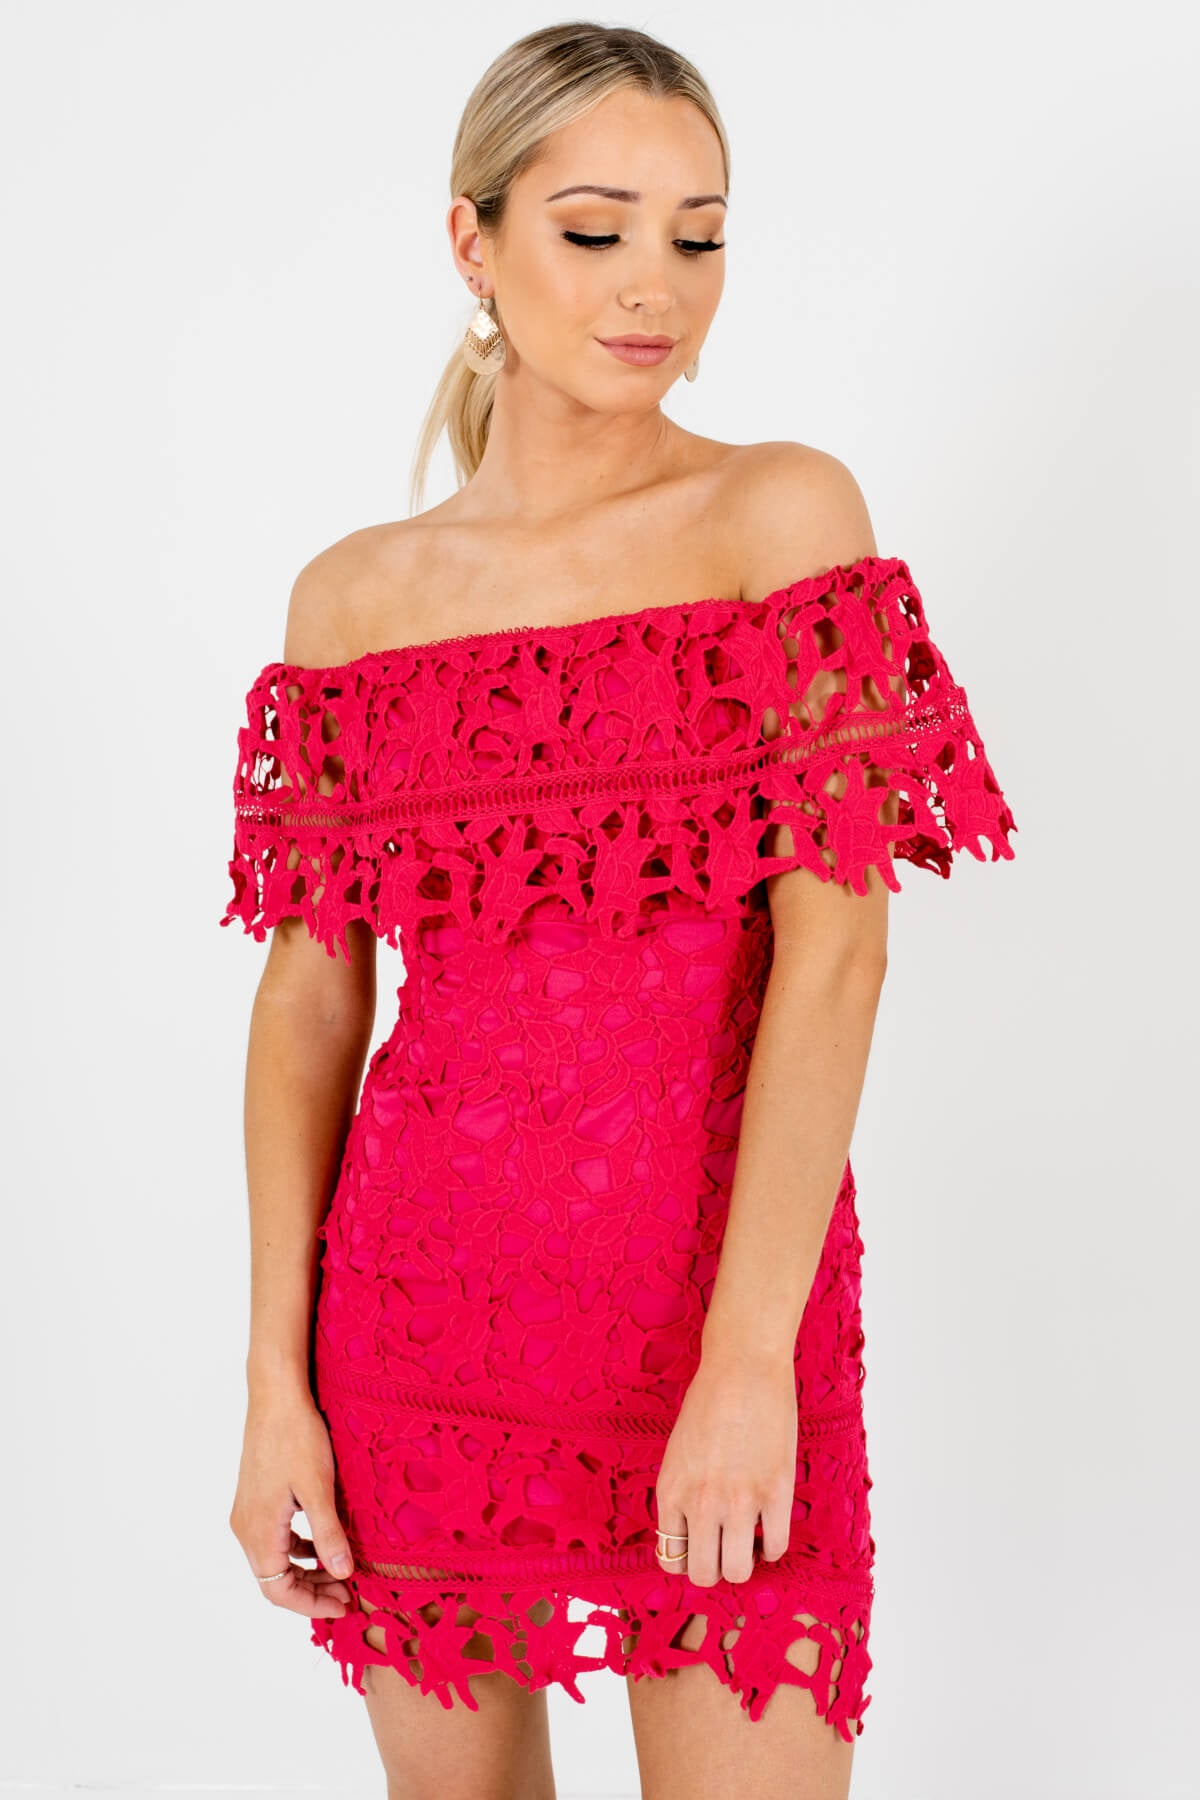 Hot Pink Crochet Lace Overlay Boutique Mini Dresses for Women